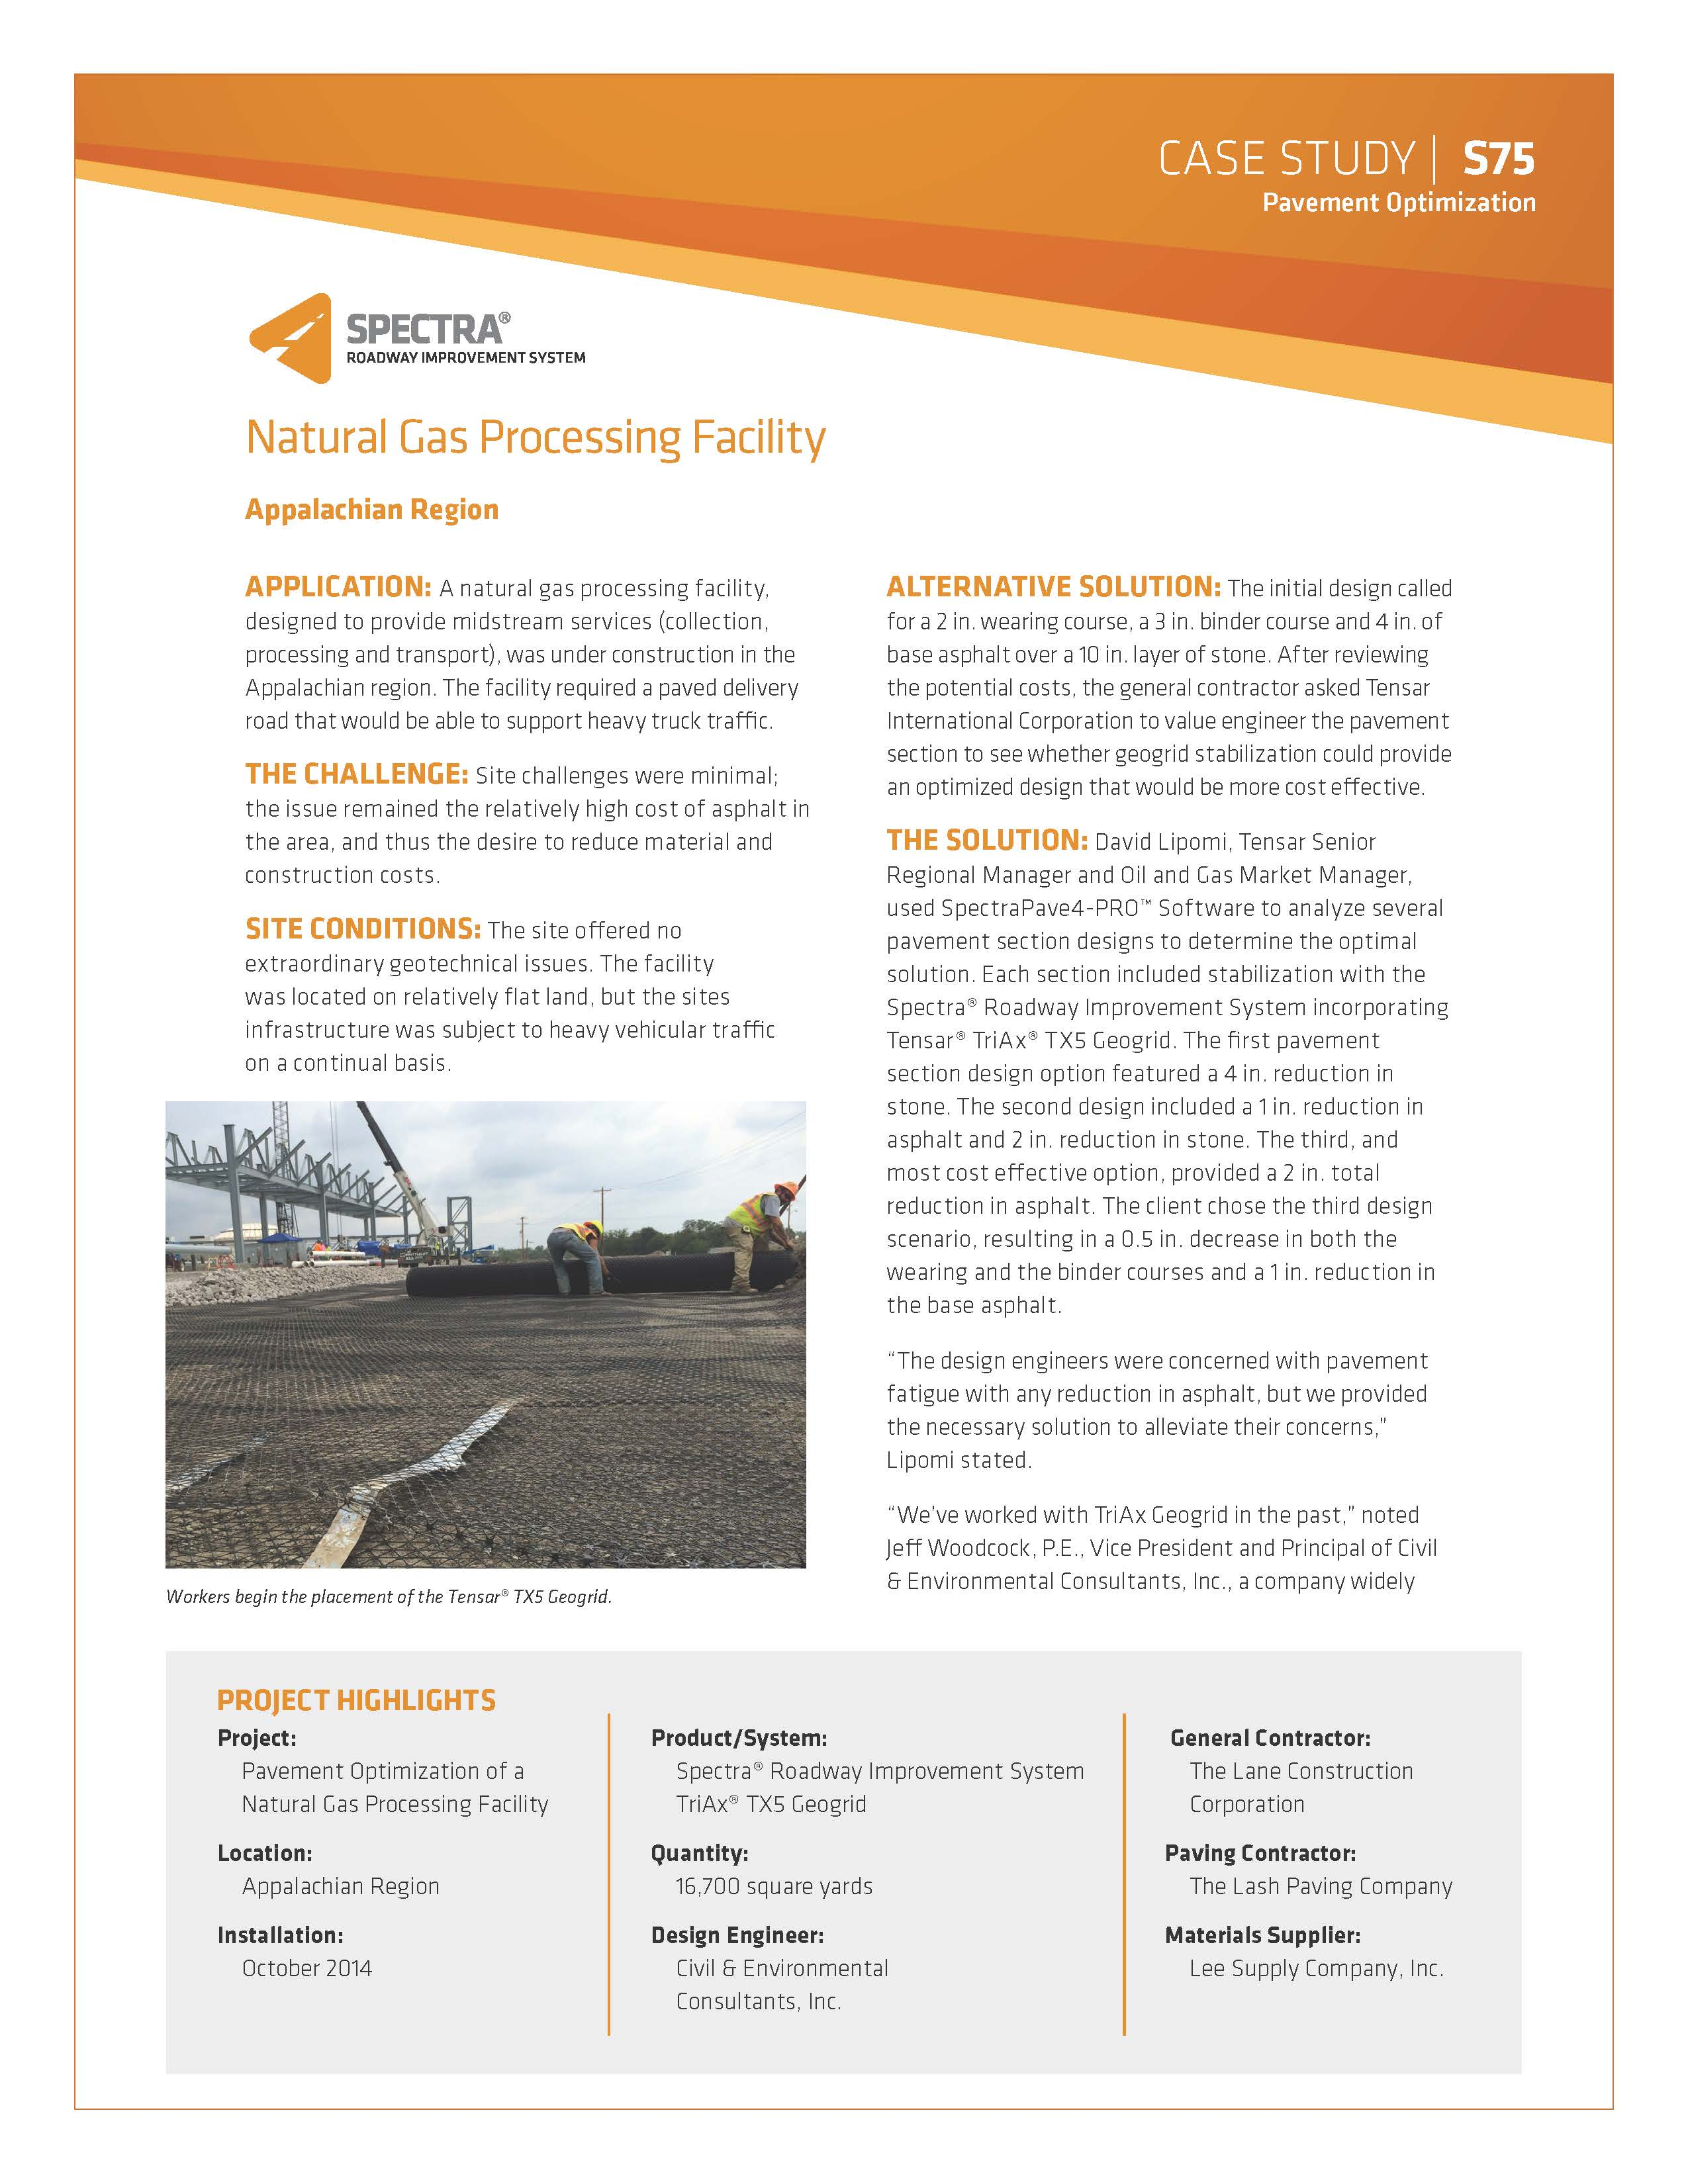 Natural Gas Condensate Facility Case Study_Page_1